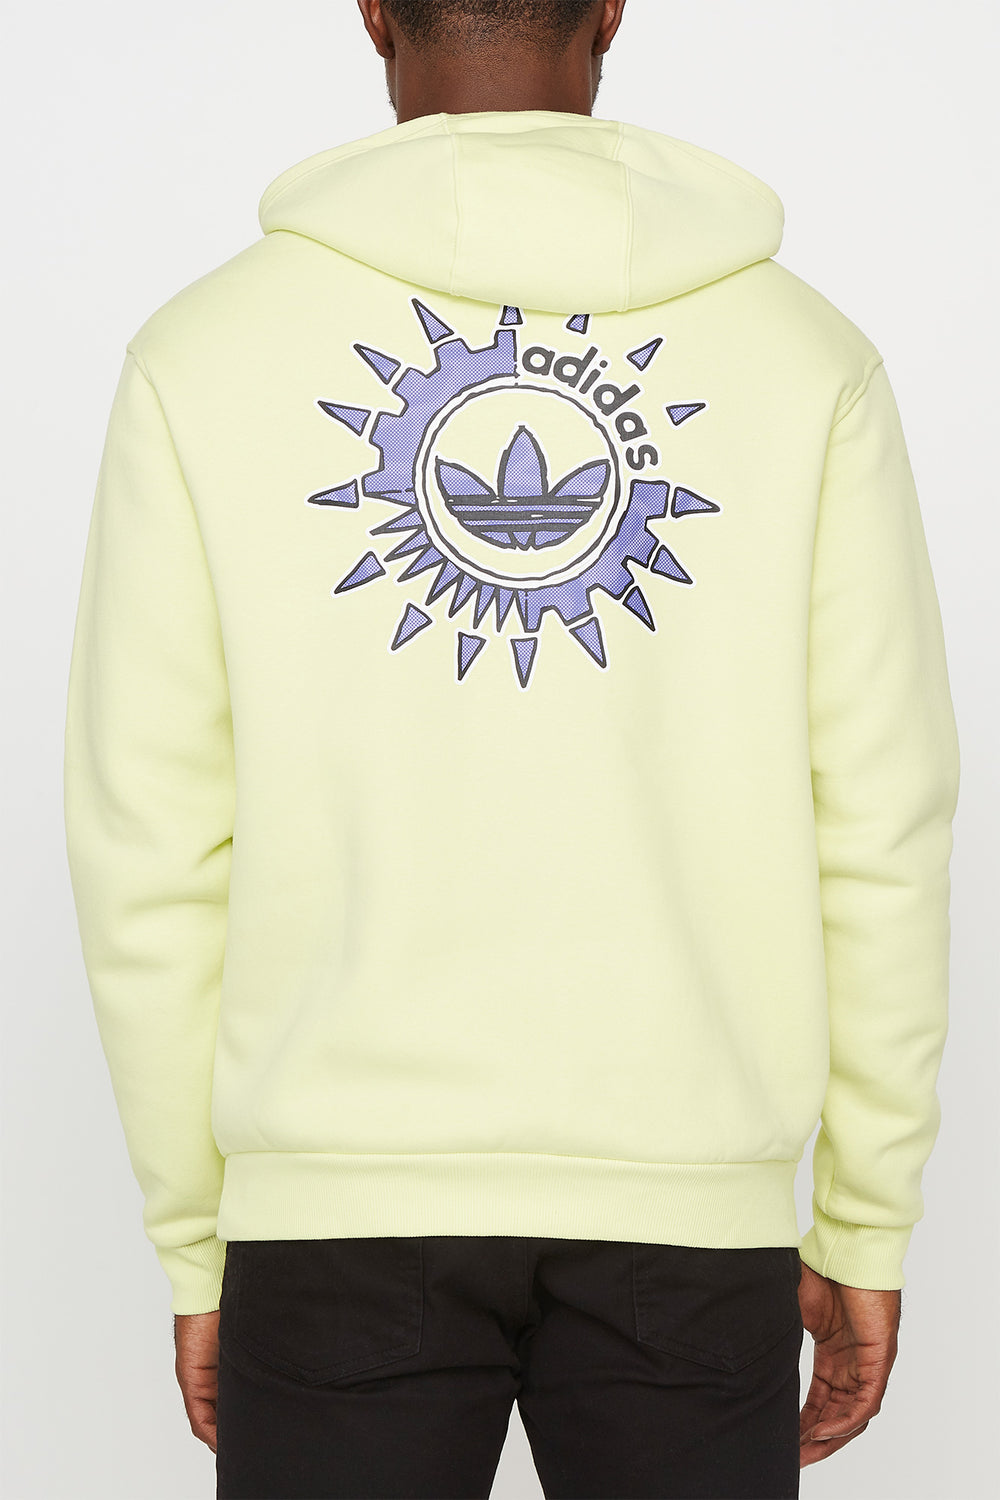 Adidas Mens SNT Originals Hoodie Yellow